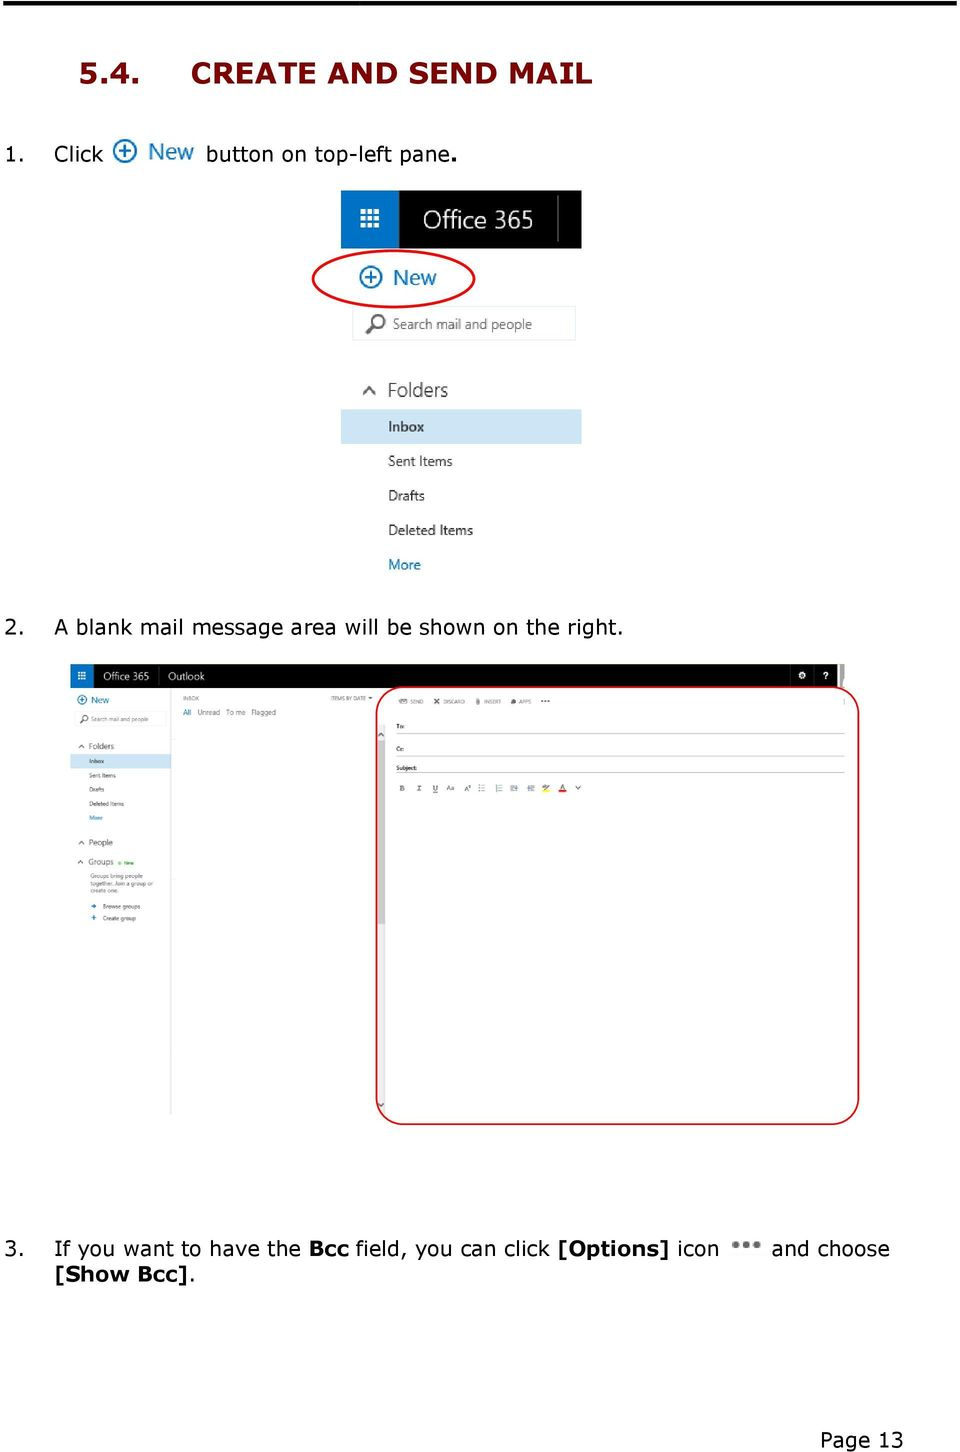 A blank mail message area will be shown on the right.